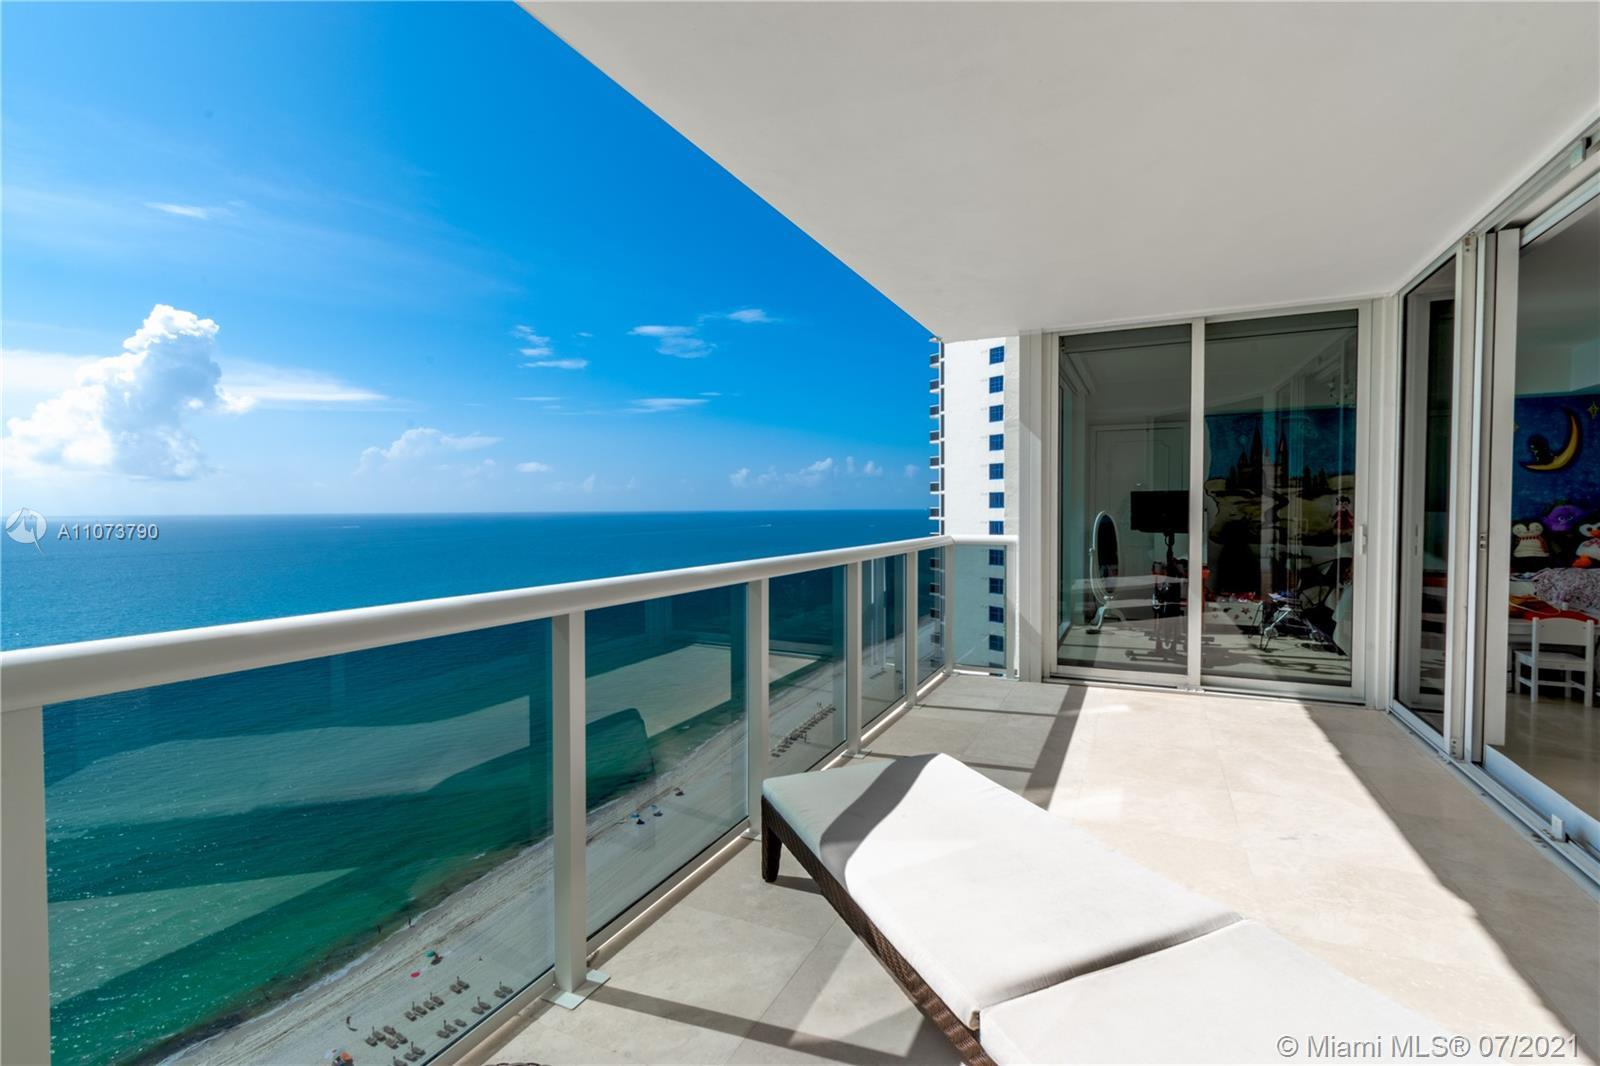 This stunning flow-through 3-bedrooms, 2.5-bathrooms condo located in the luxurious Ocean Two Condo